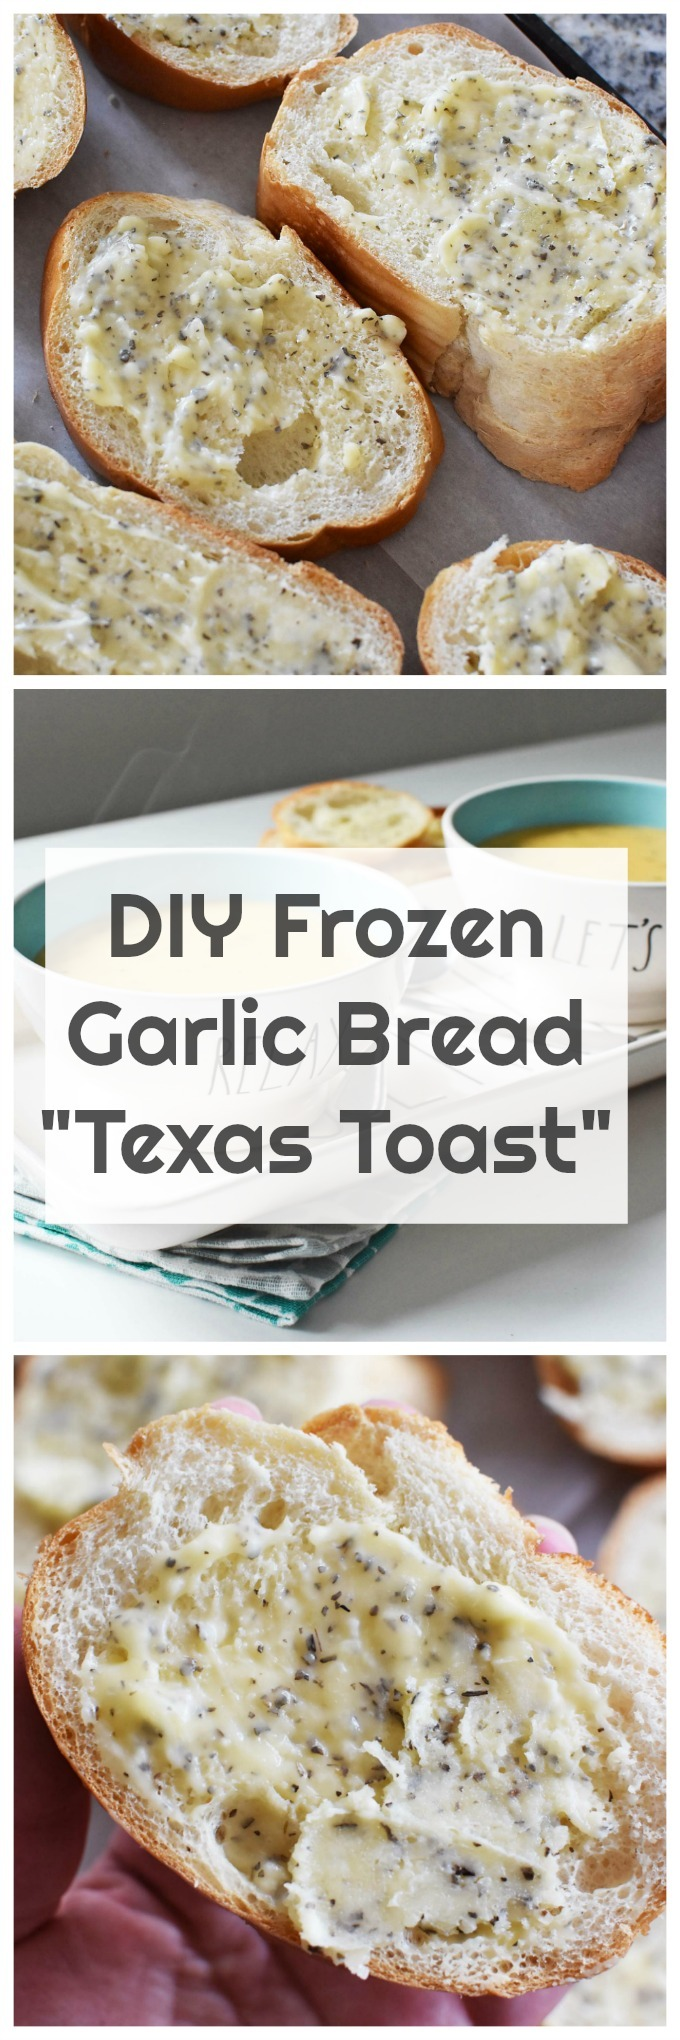 DIY Frozen Garlic Bread Texas Toast